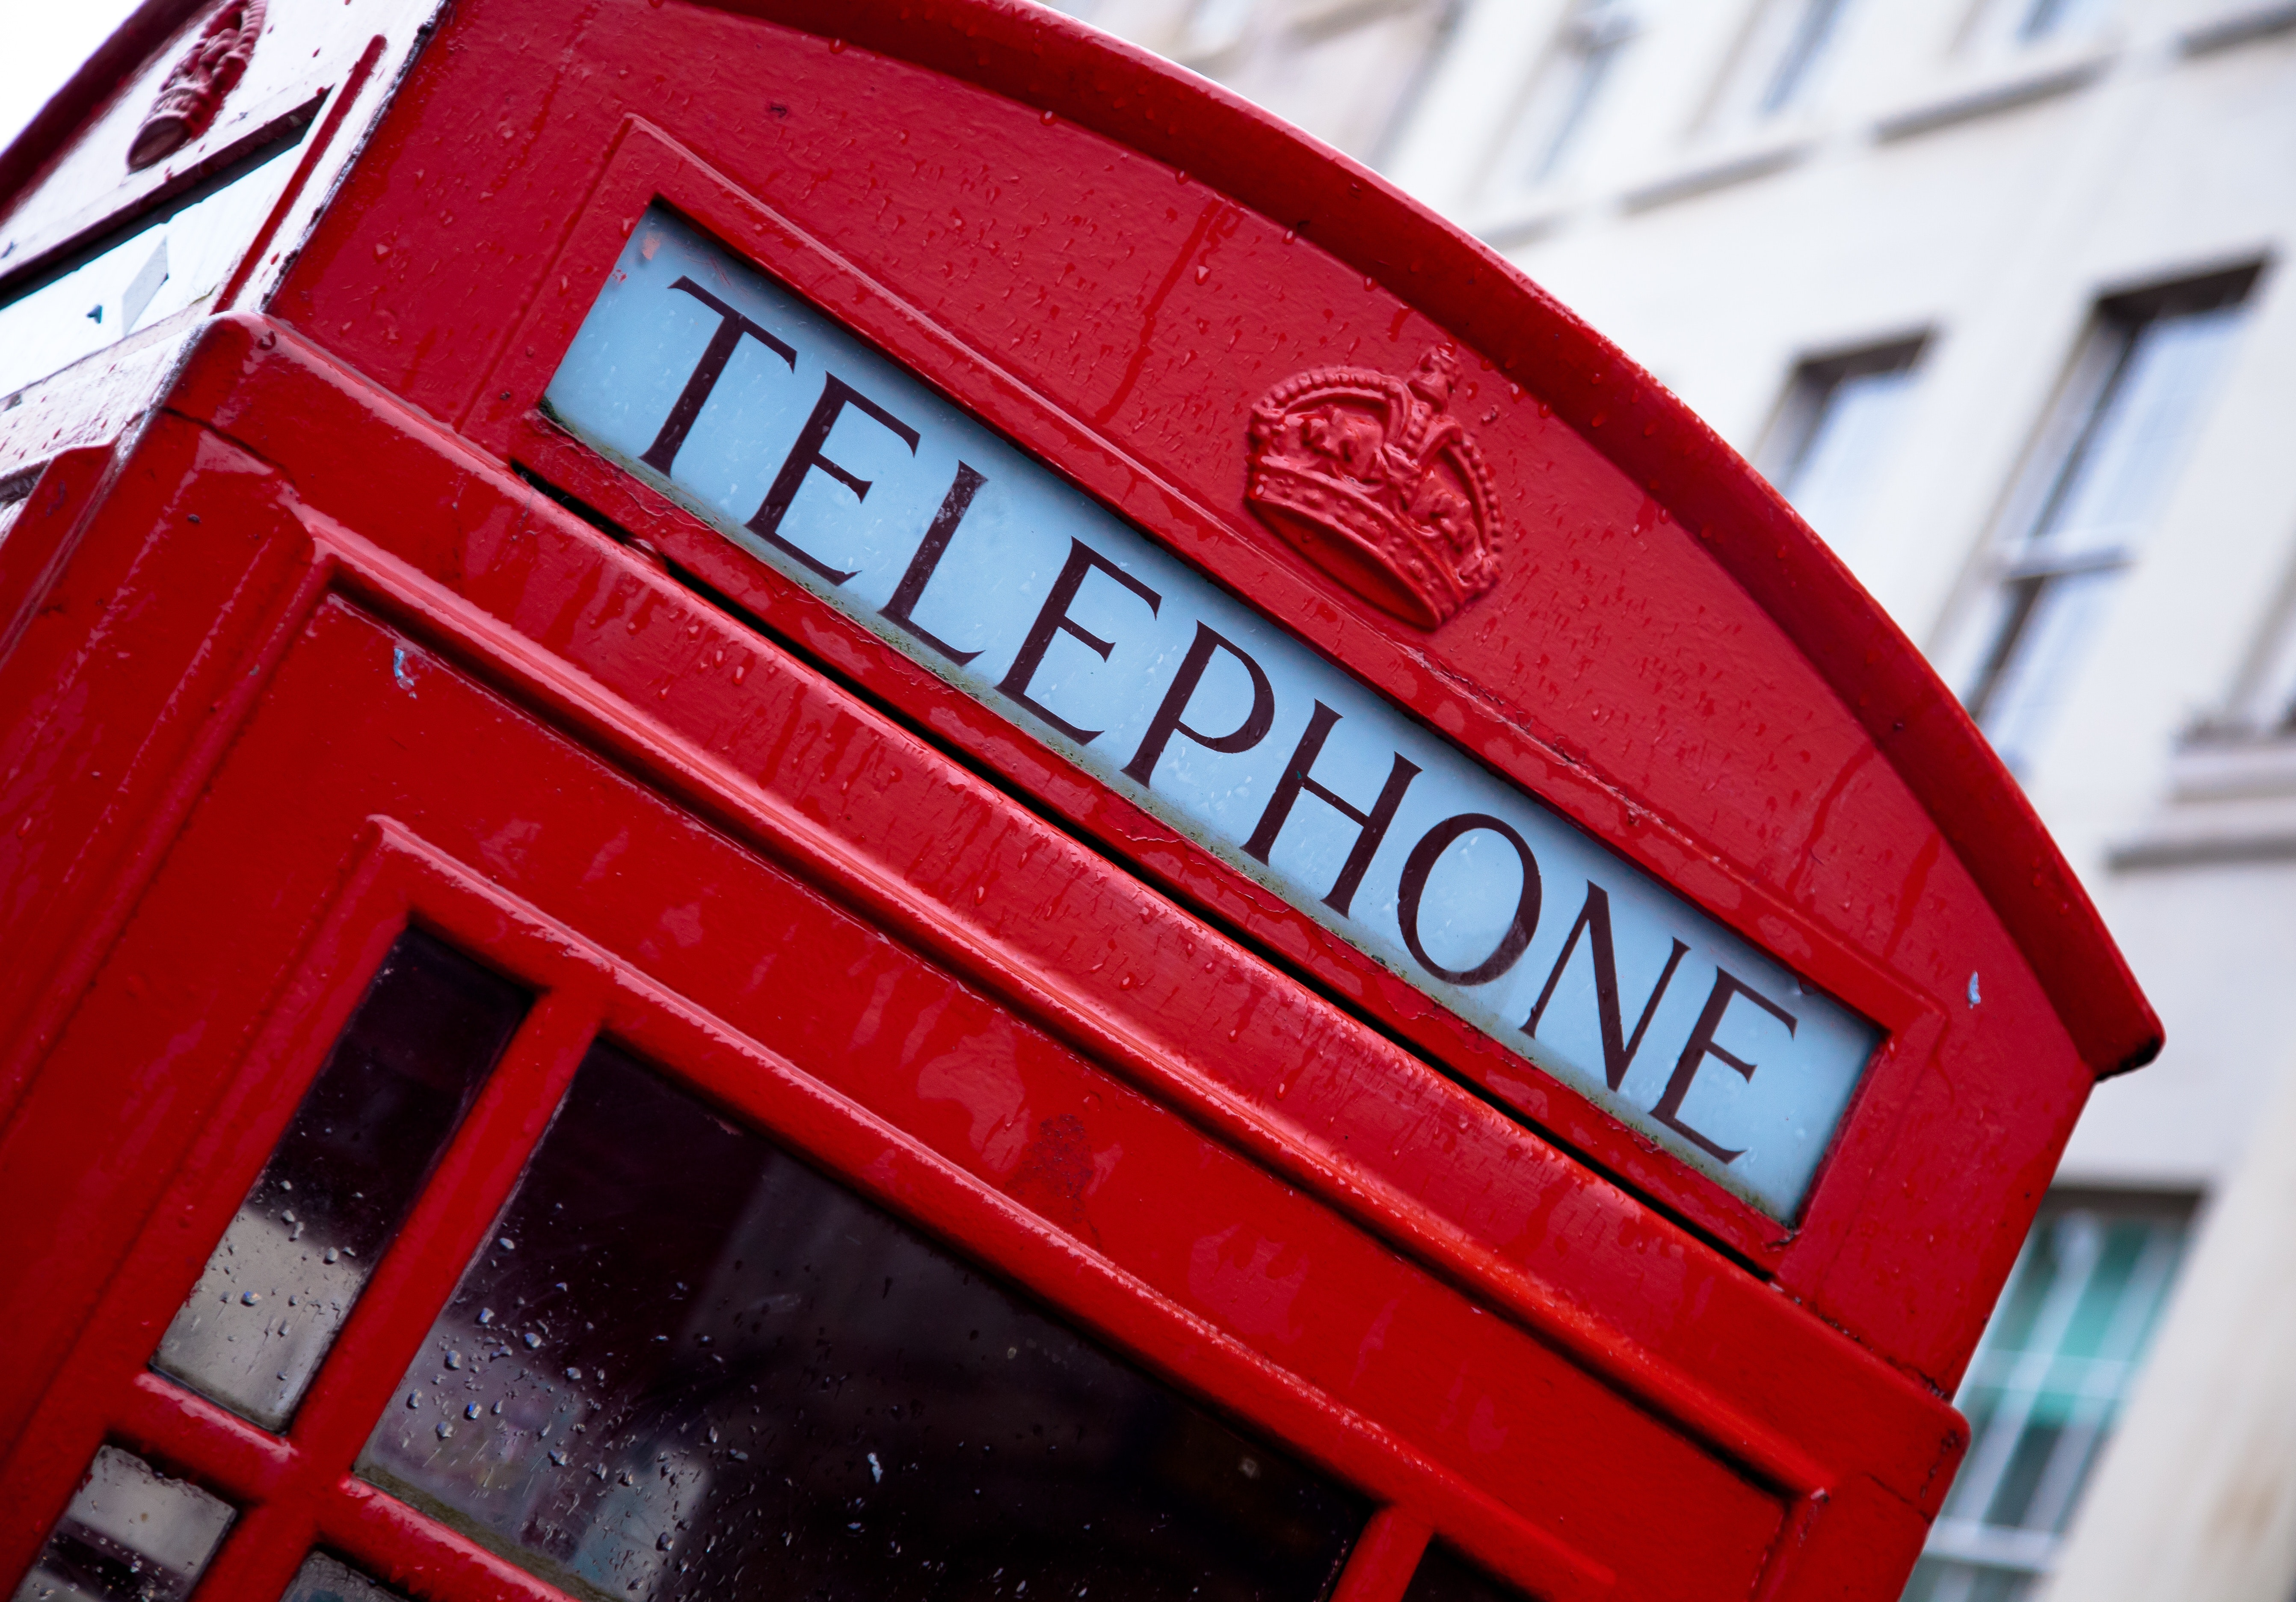 Red and white telephone booth photo